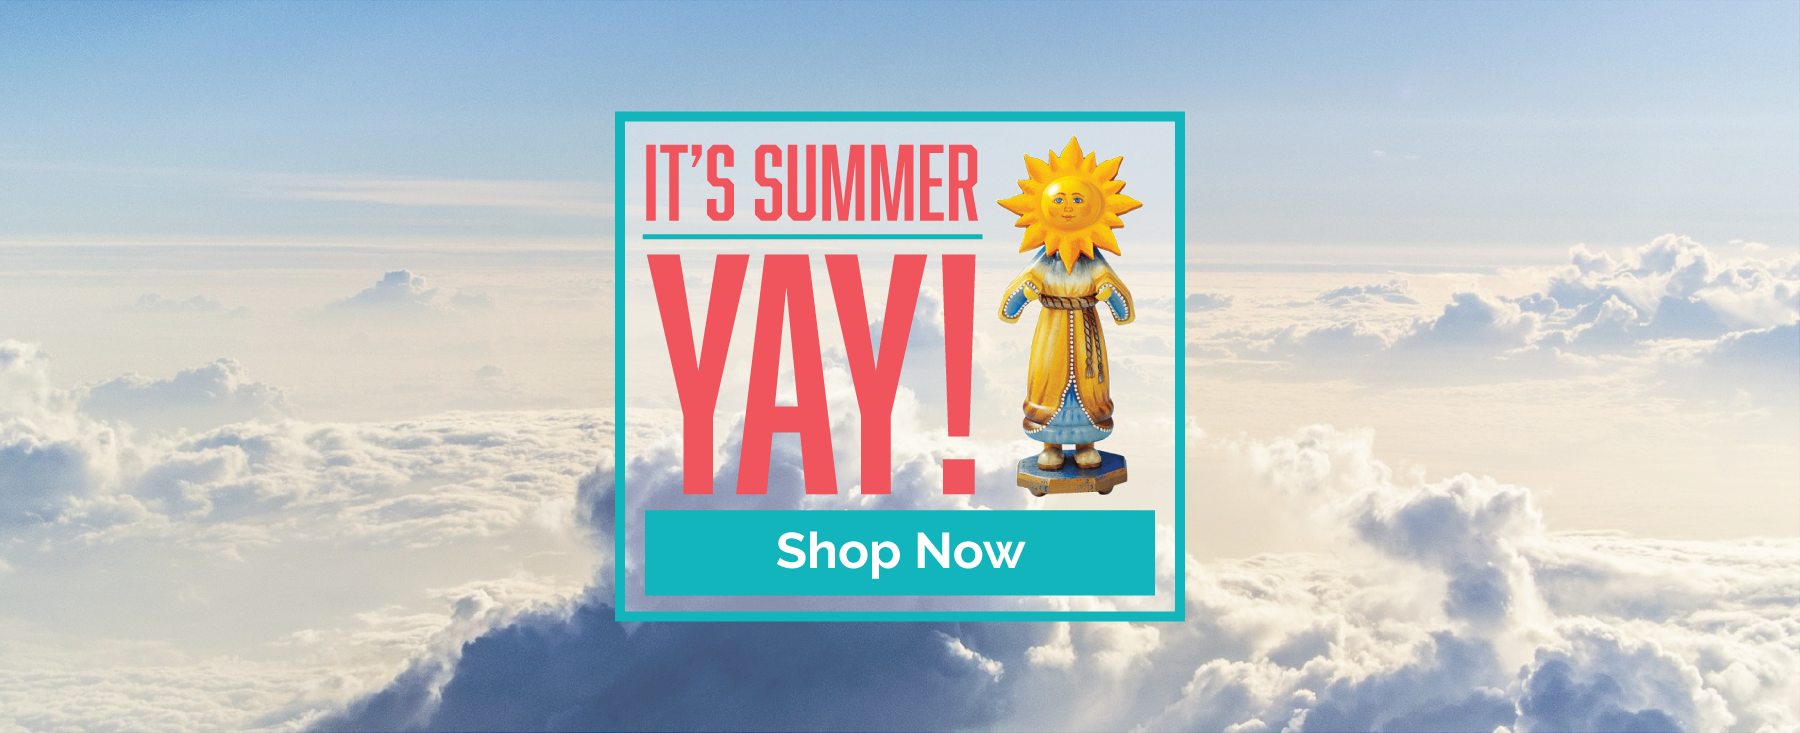 Explore Summer Products